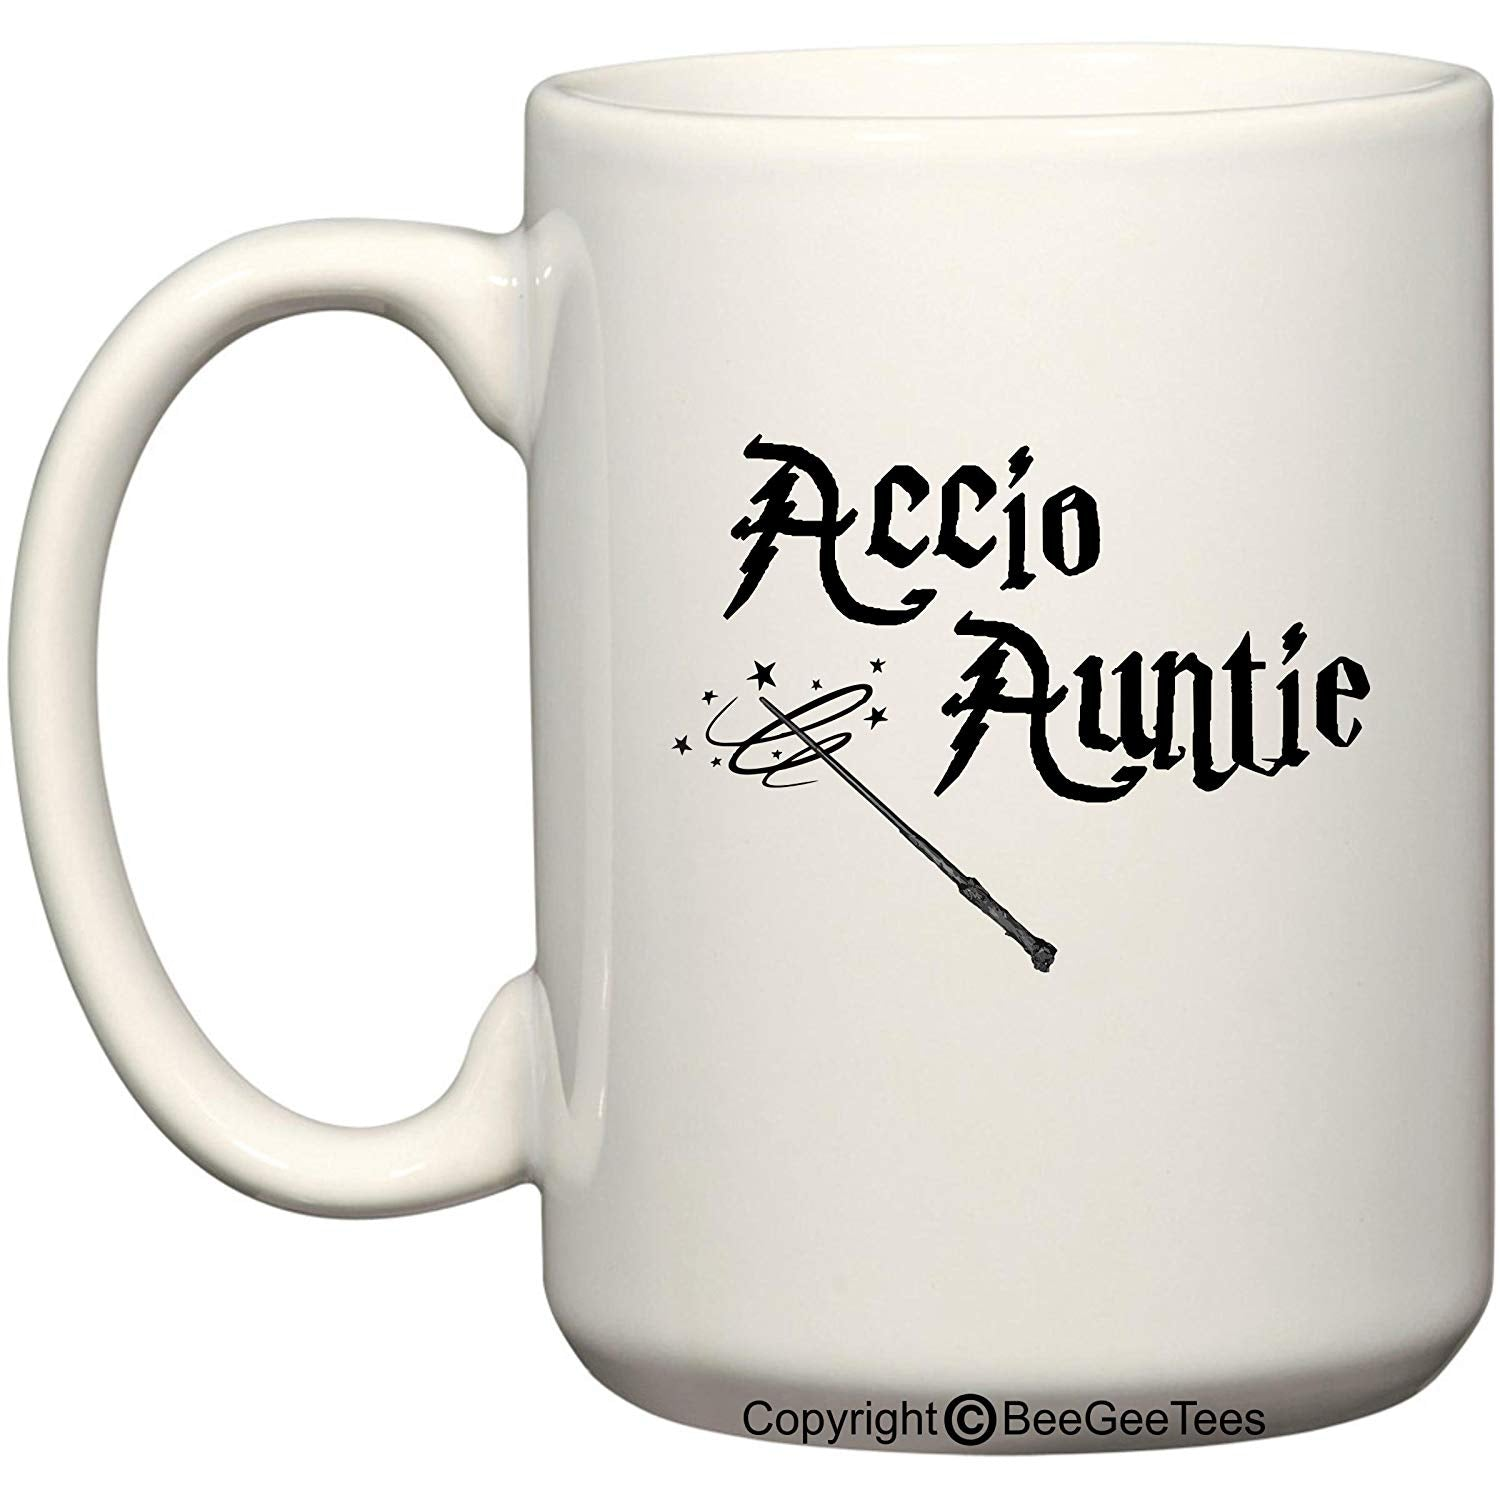 Accio Auntie Funny Harry Potter Inspired Coffee Mug or Tea Cup Wizards by BeeGeeTees